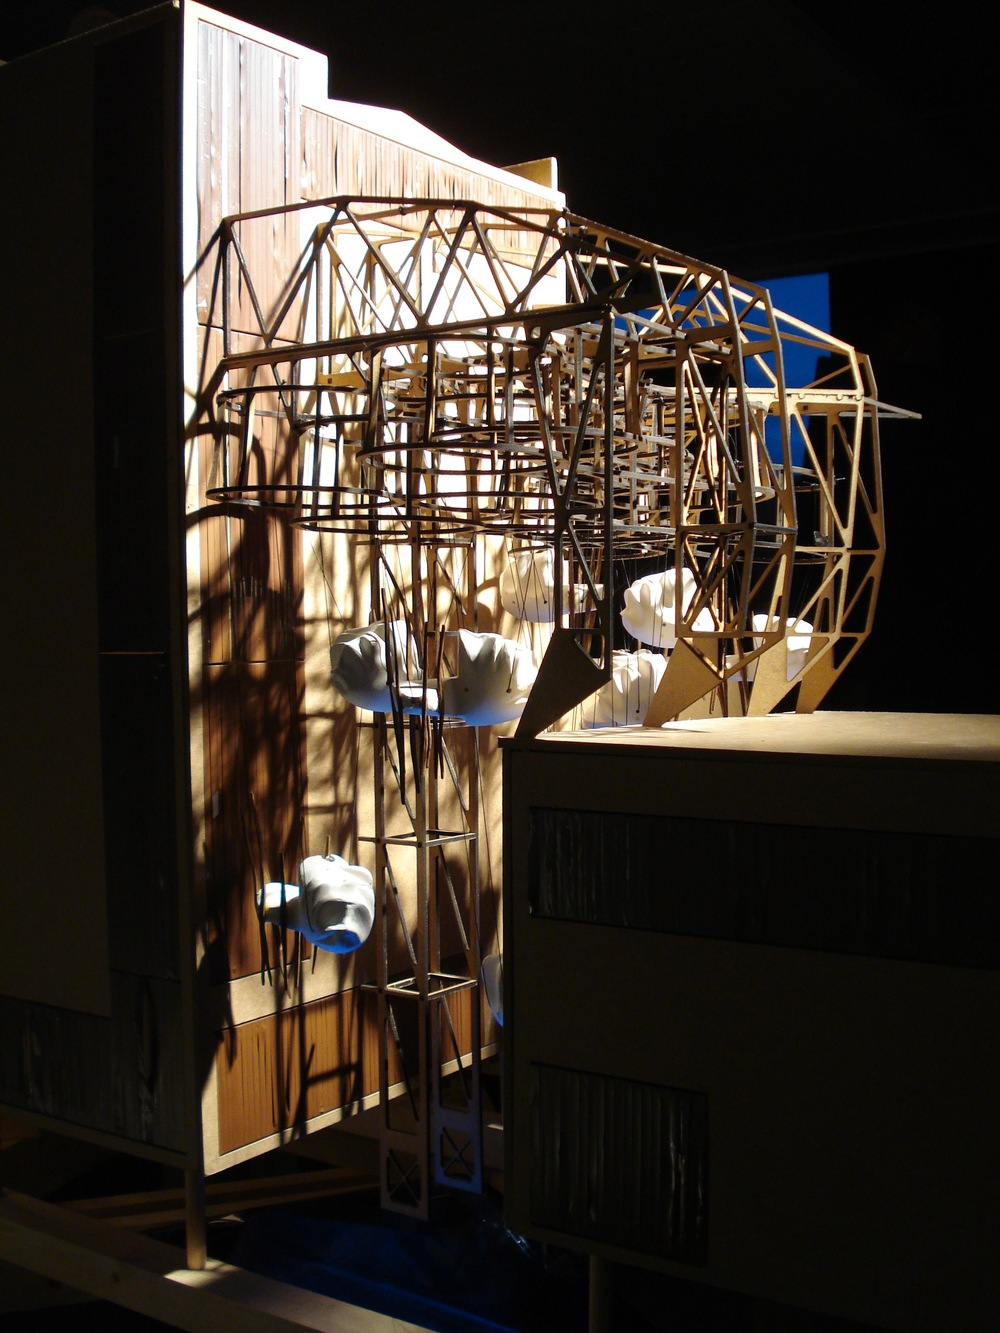 Boarding House, model, medium-density fibreboard and porcelain, 2008